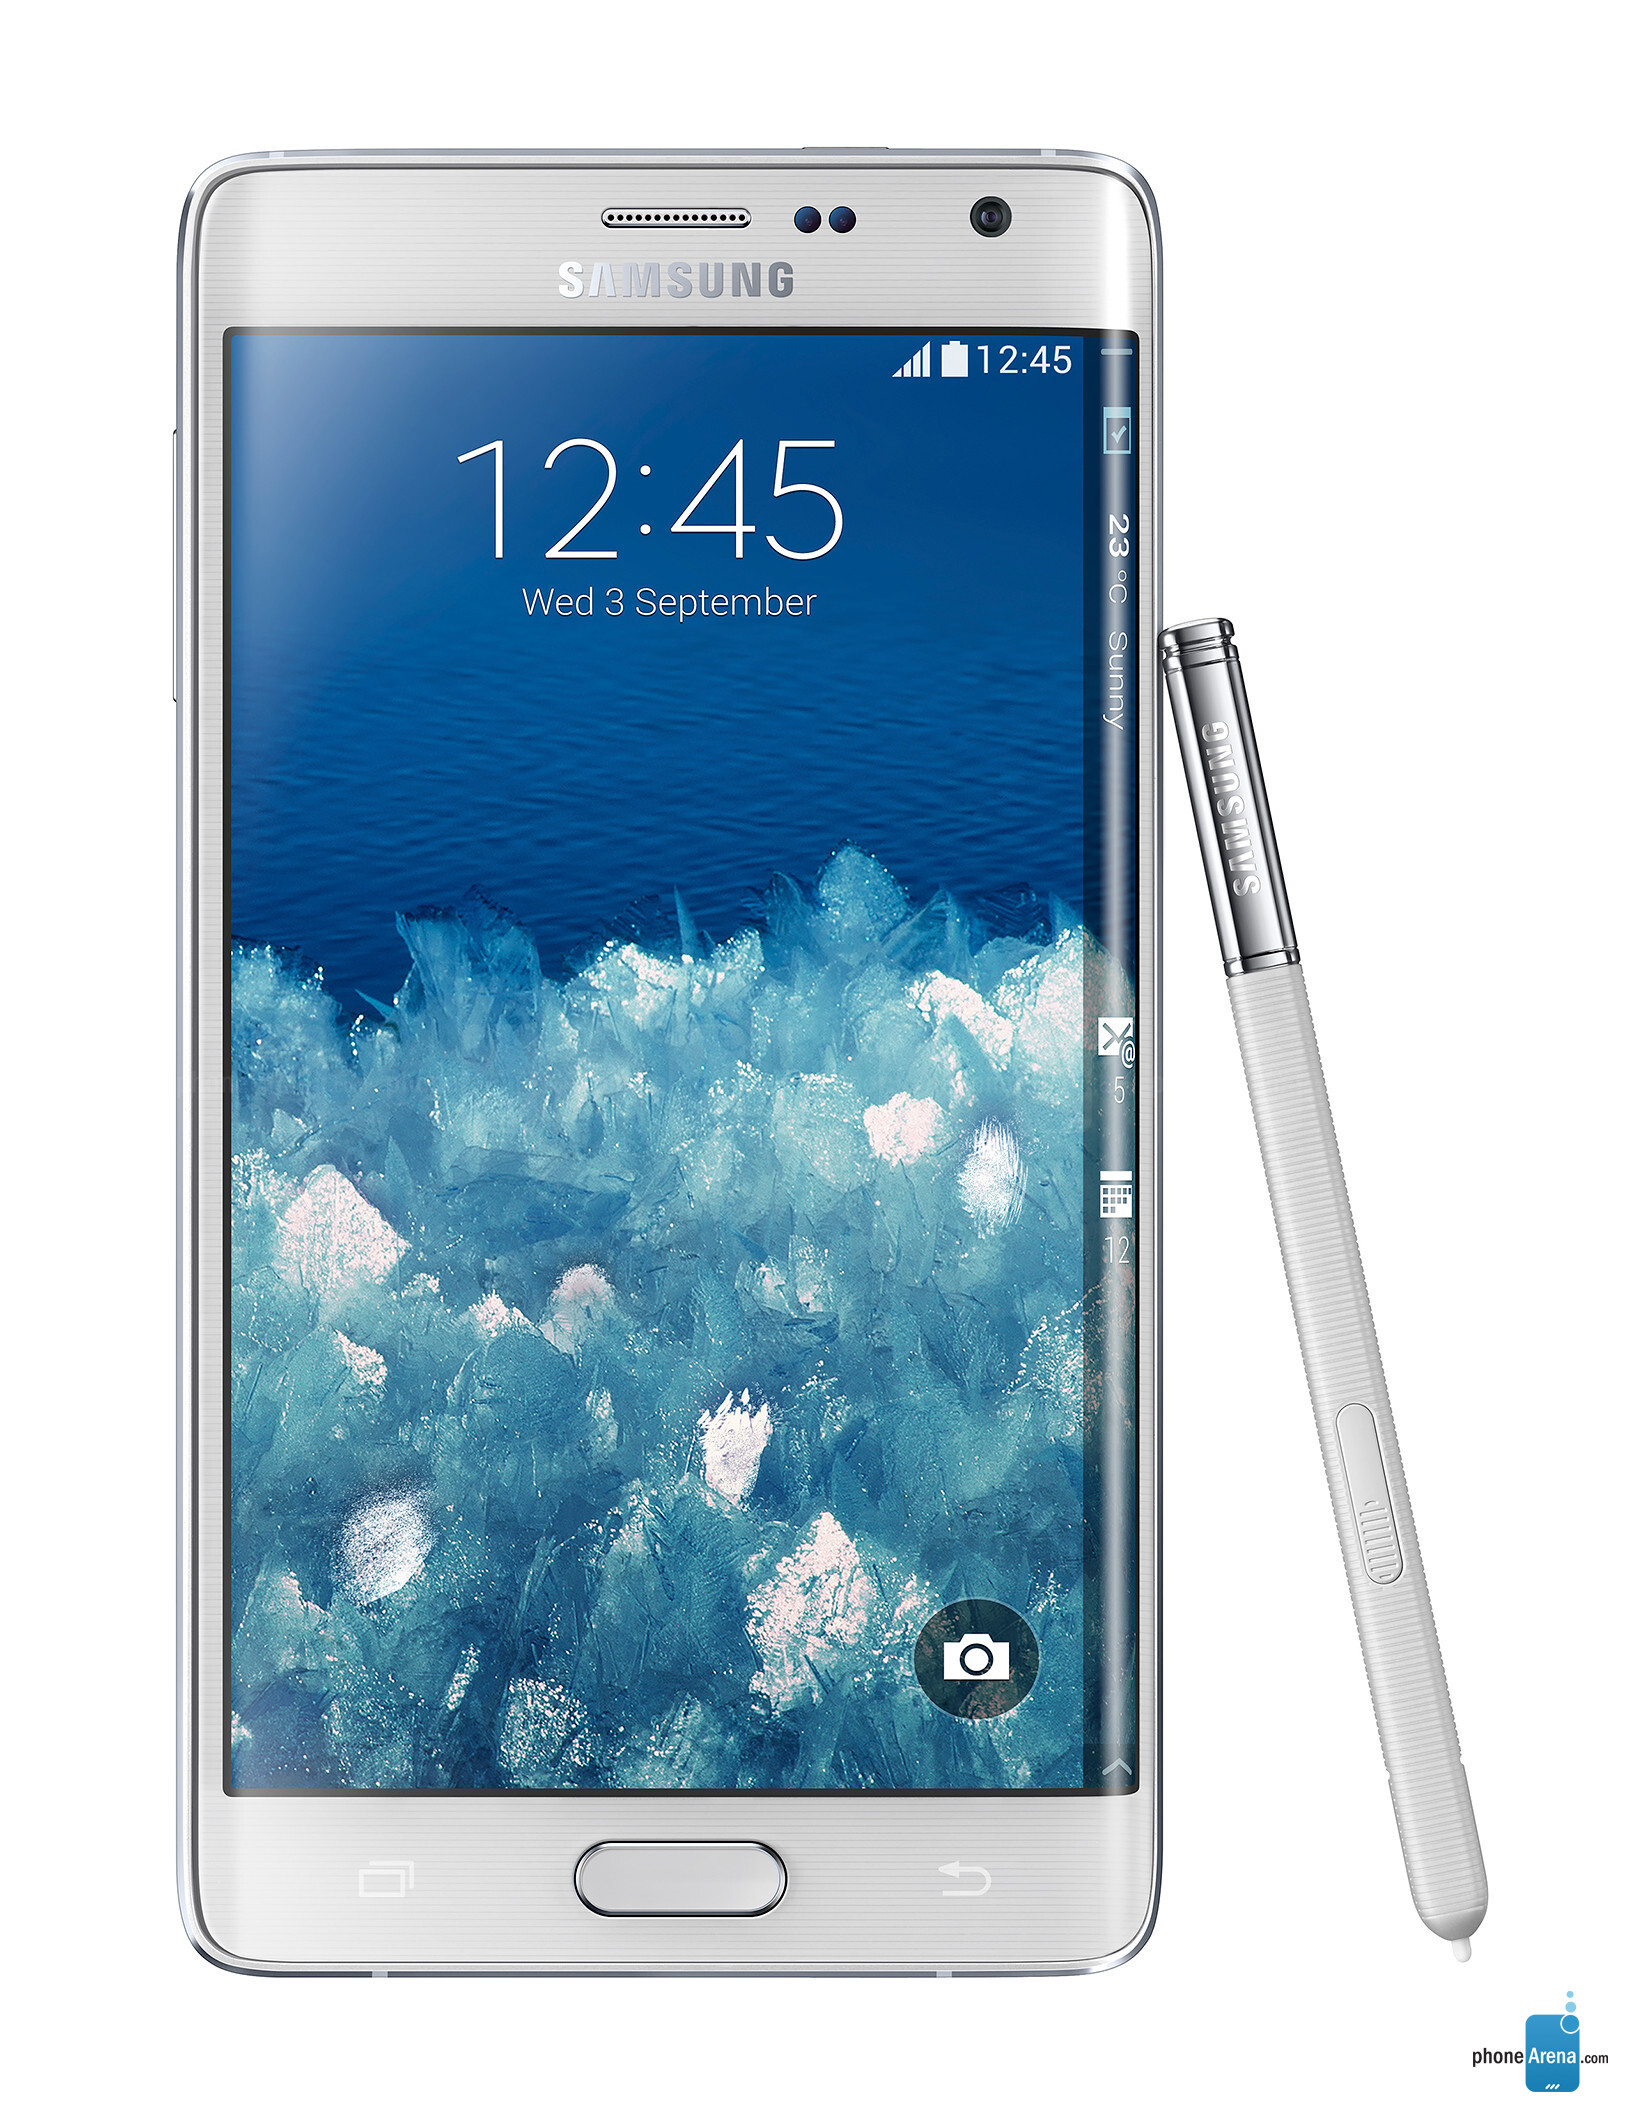 Samsung Galaxy Note price, specifications, features, comparison